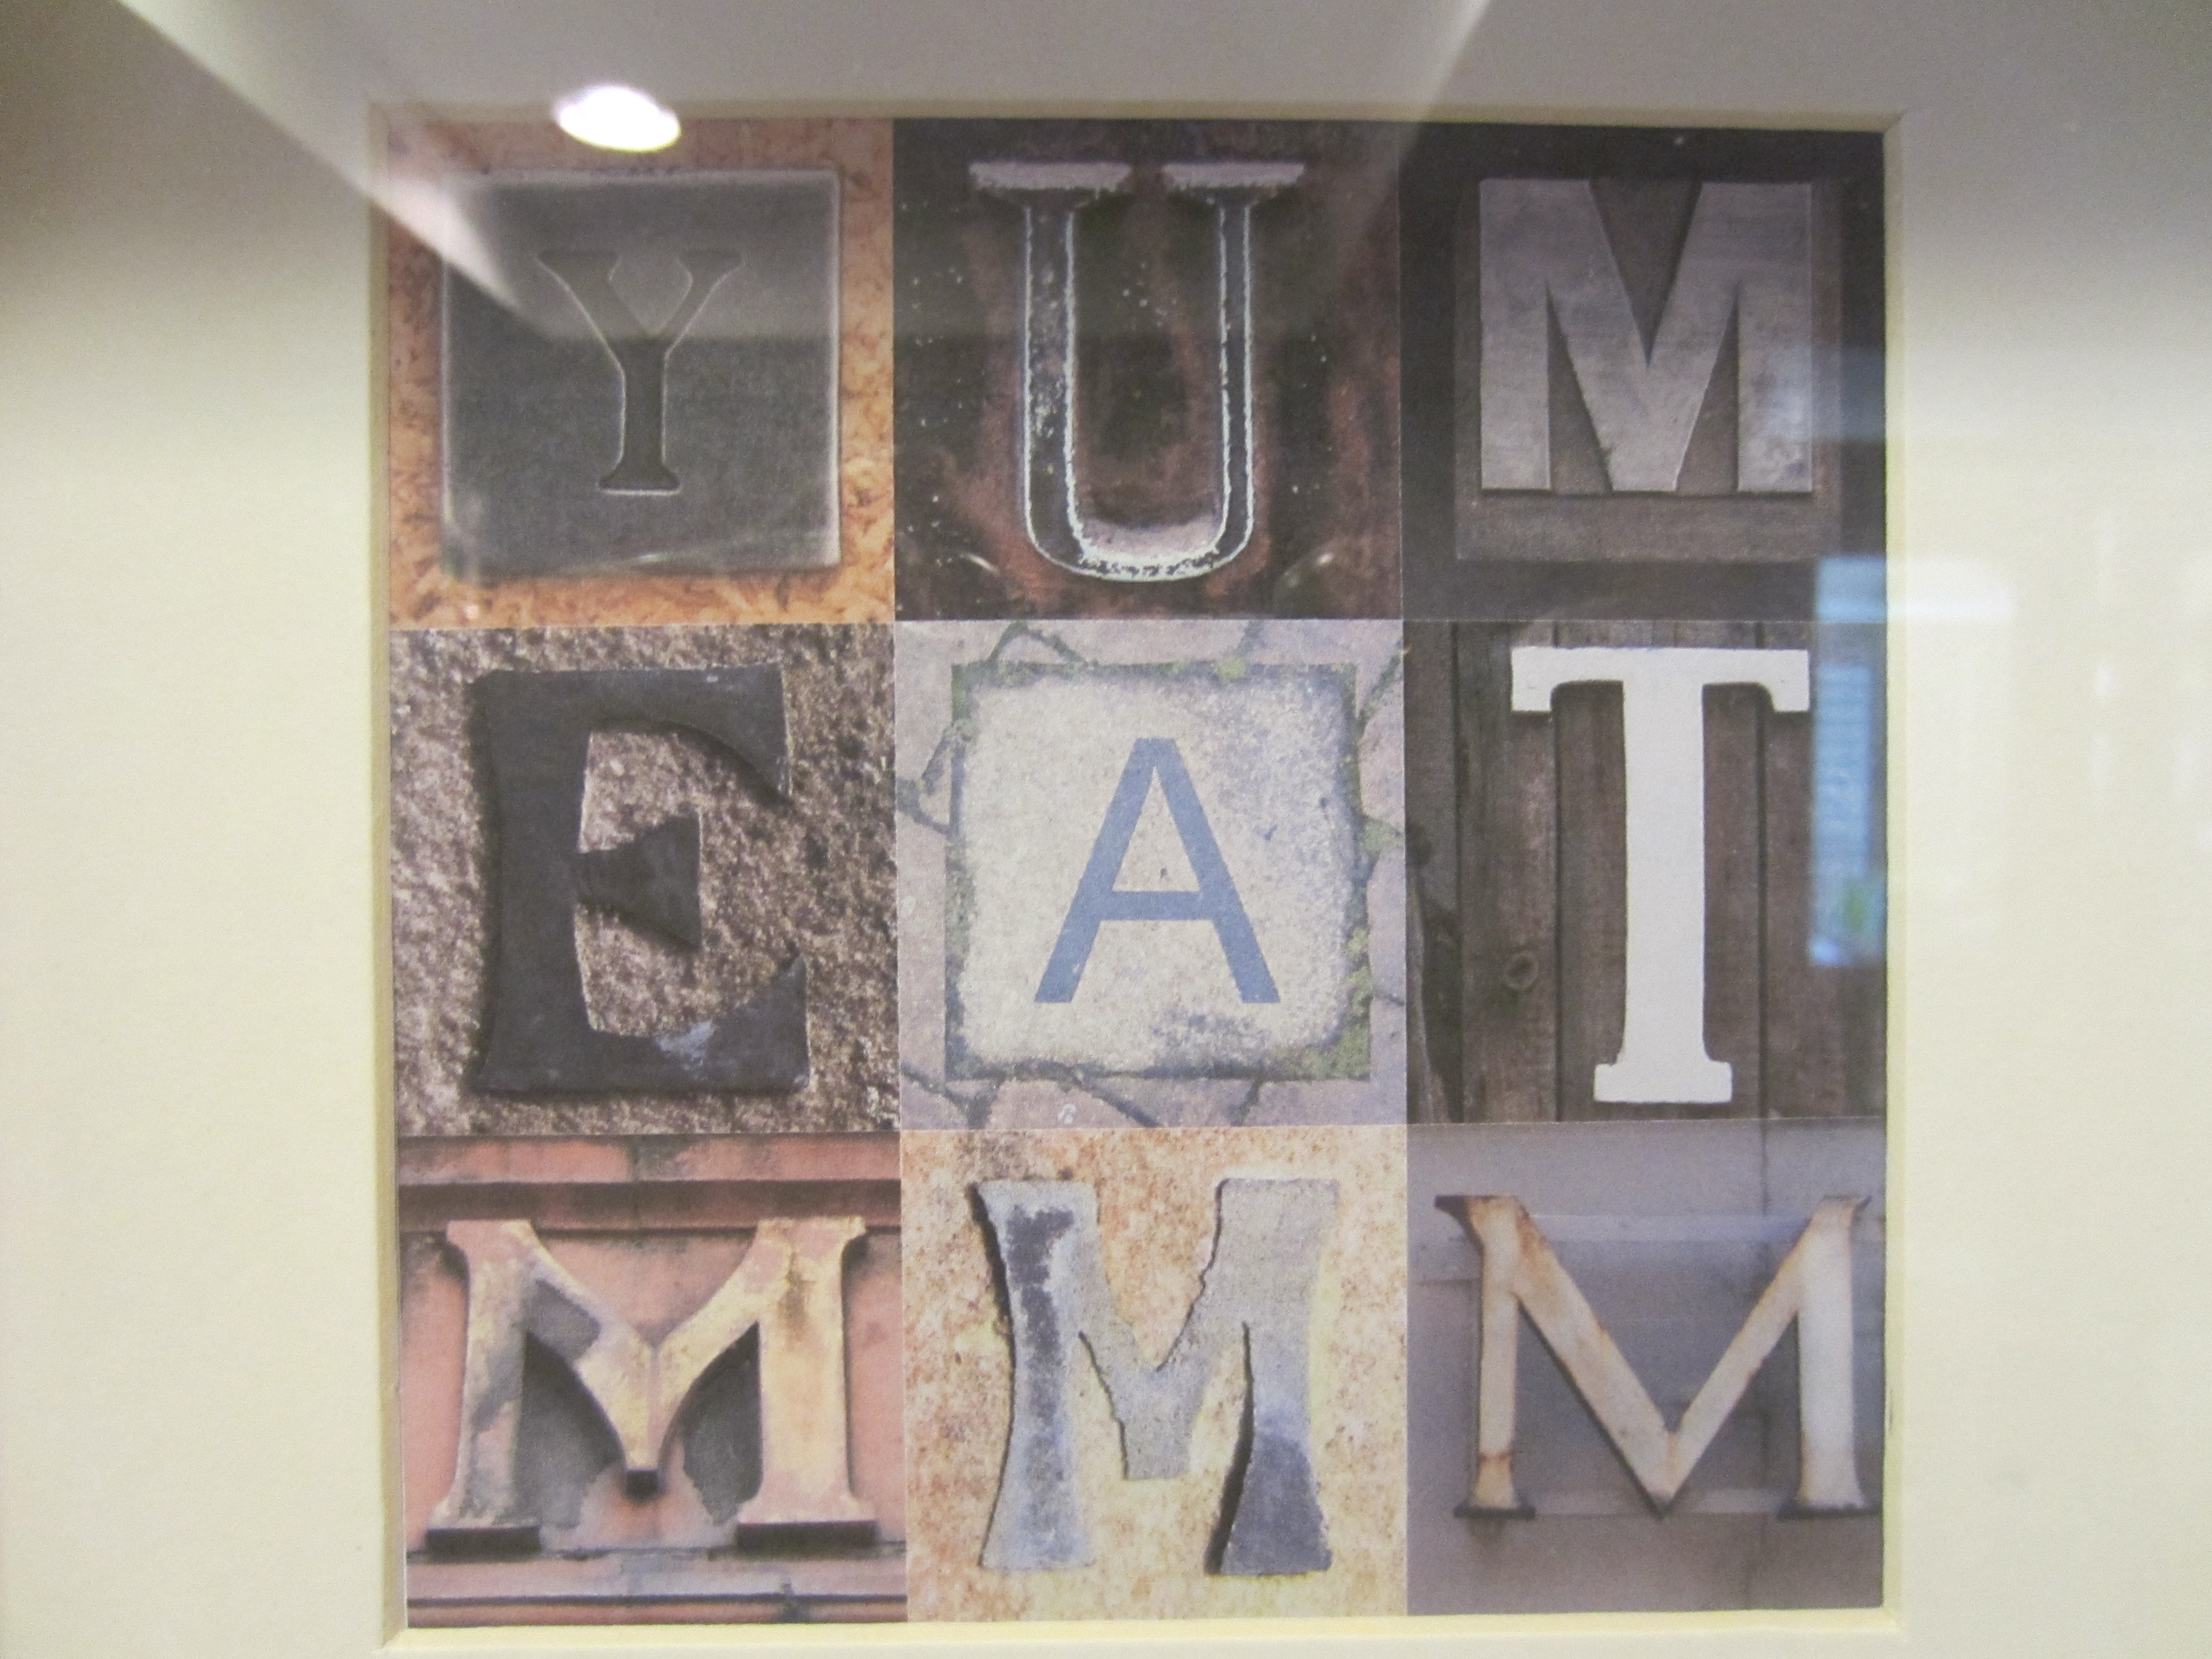 Letter And Number Diy Wall Art – Diy Inspired Within Most Current Letter Wall Art (View 8 of 20)